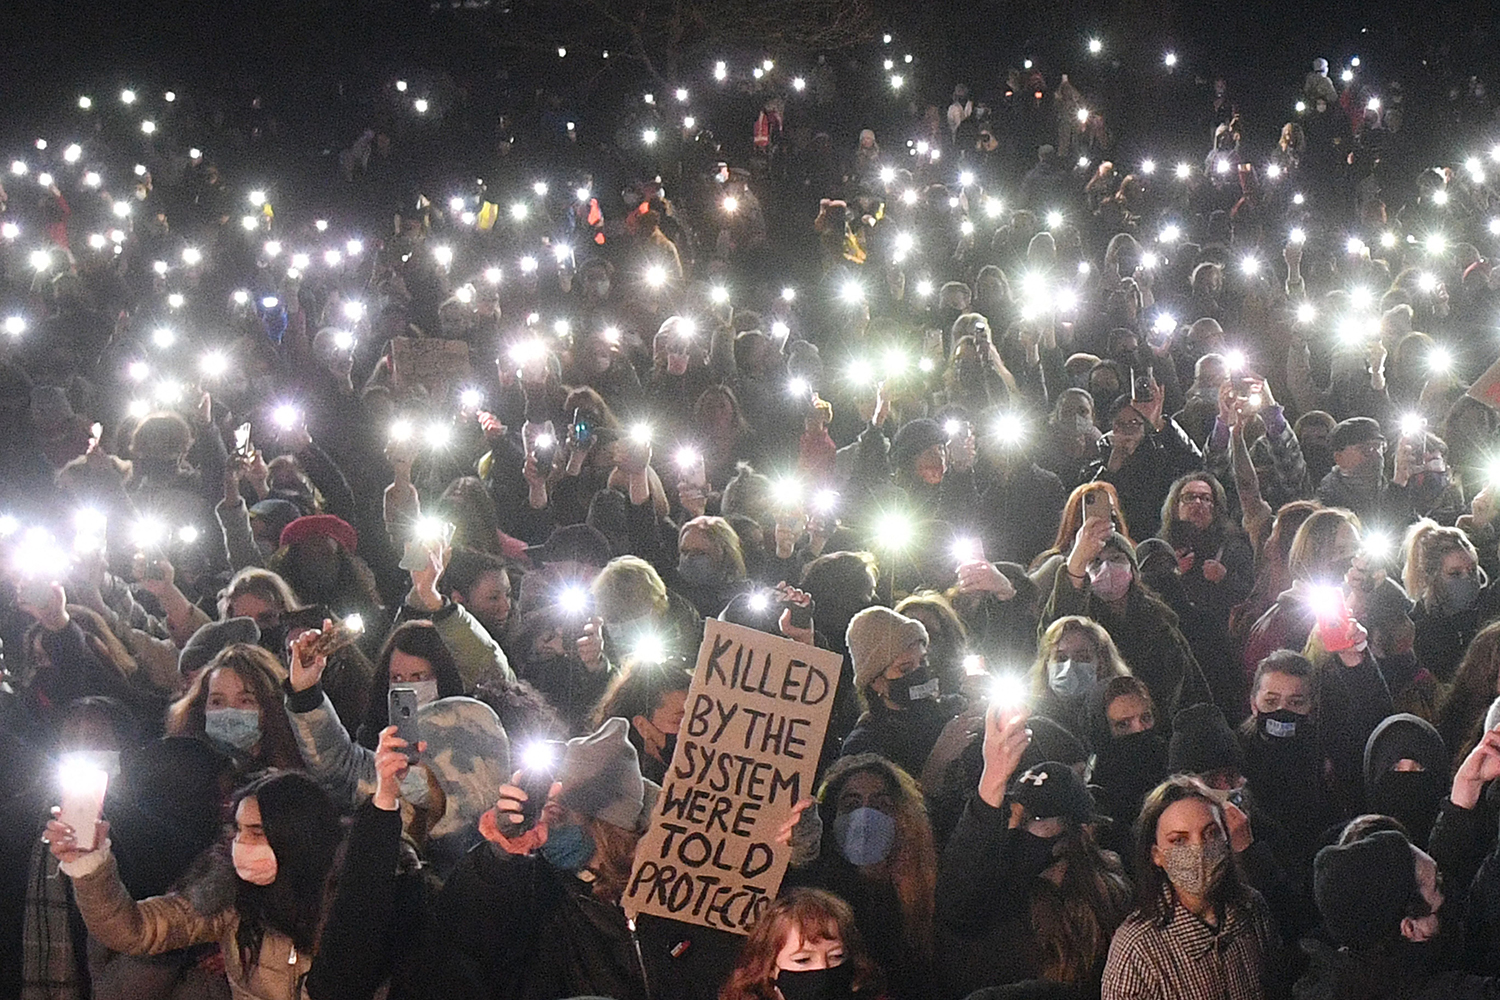 People hold up their phone flashlights as they gather at a bandstand in London for a vigil that was planned for Sarah Everard but canceled because of COVID-19 restrictions March 13. The police officer charged with killing Everard, who disappeared while walking home from a friend's house, appeared in court earlier that day. JUSTIN TALLIS/AFP via Getty Images